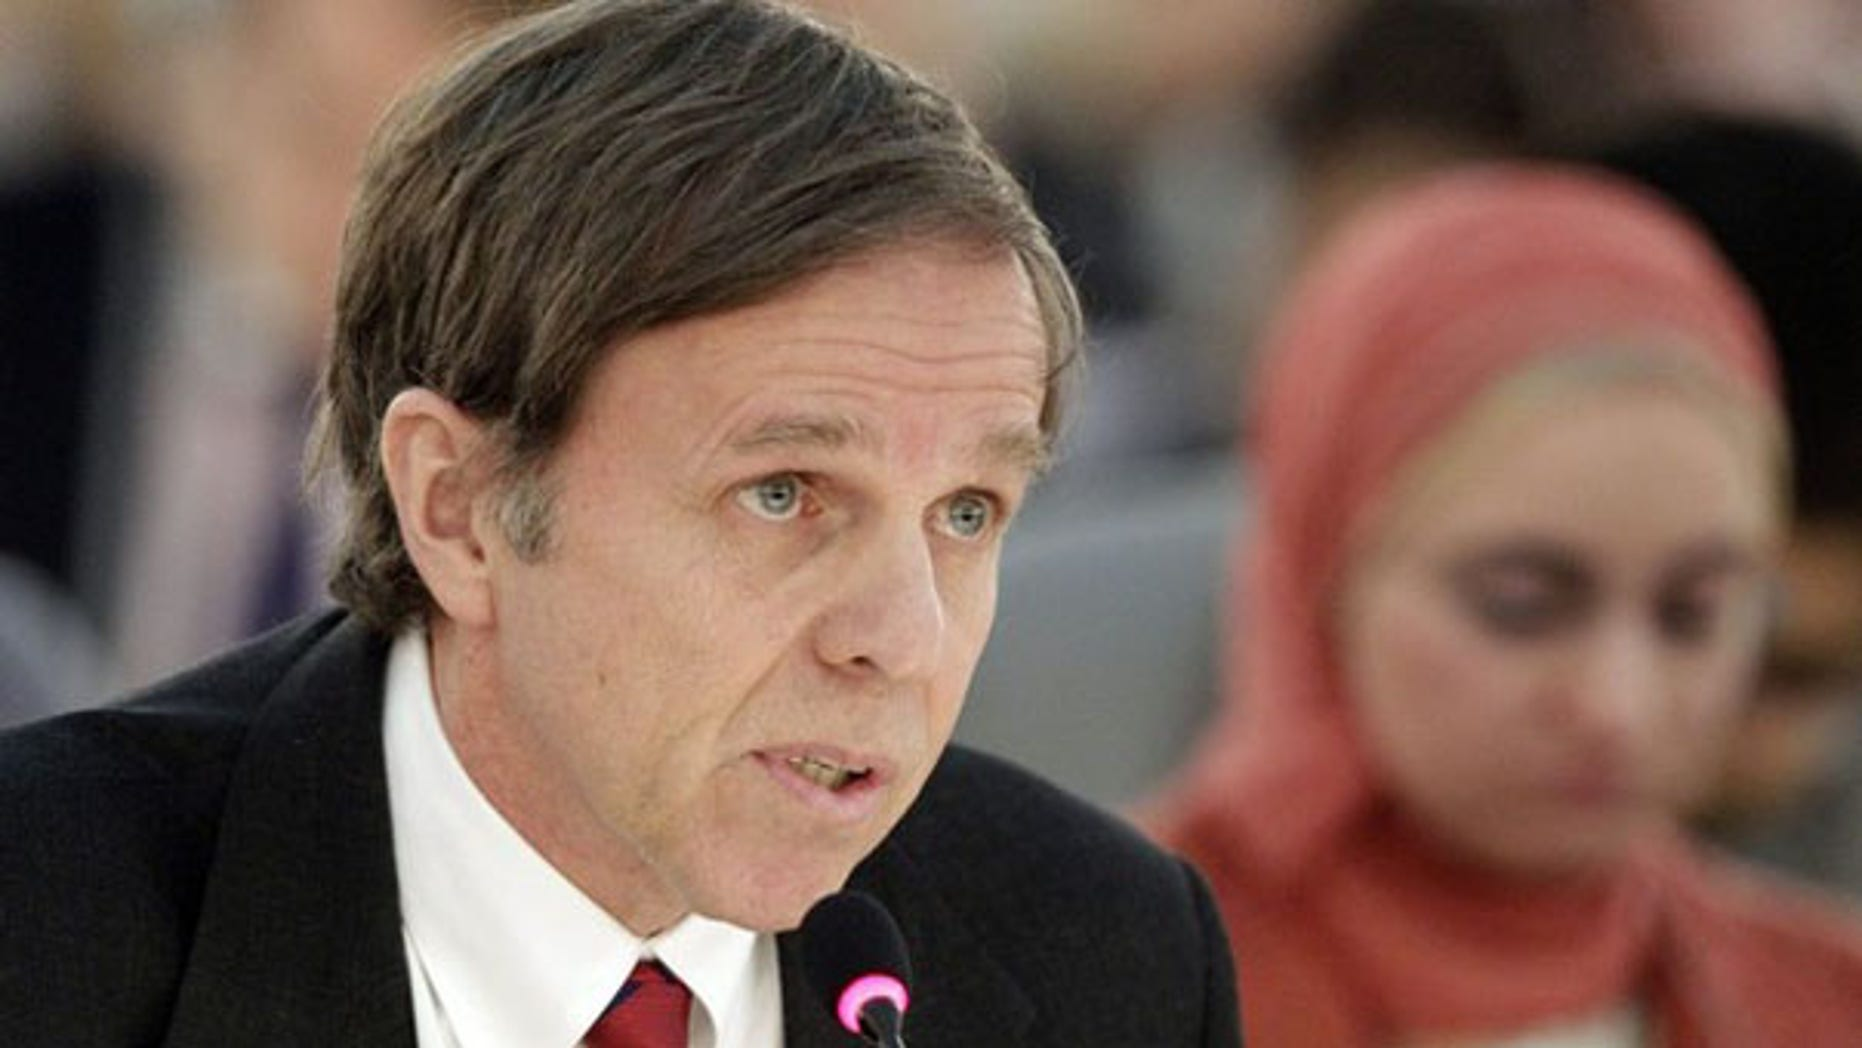 FILE: Michael Posner, assistant secretary of state, is shown discussing Iran at the United Nations European headquarters in Geneva Feb. 15. (Reuters Photo)